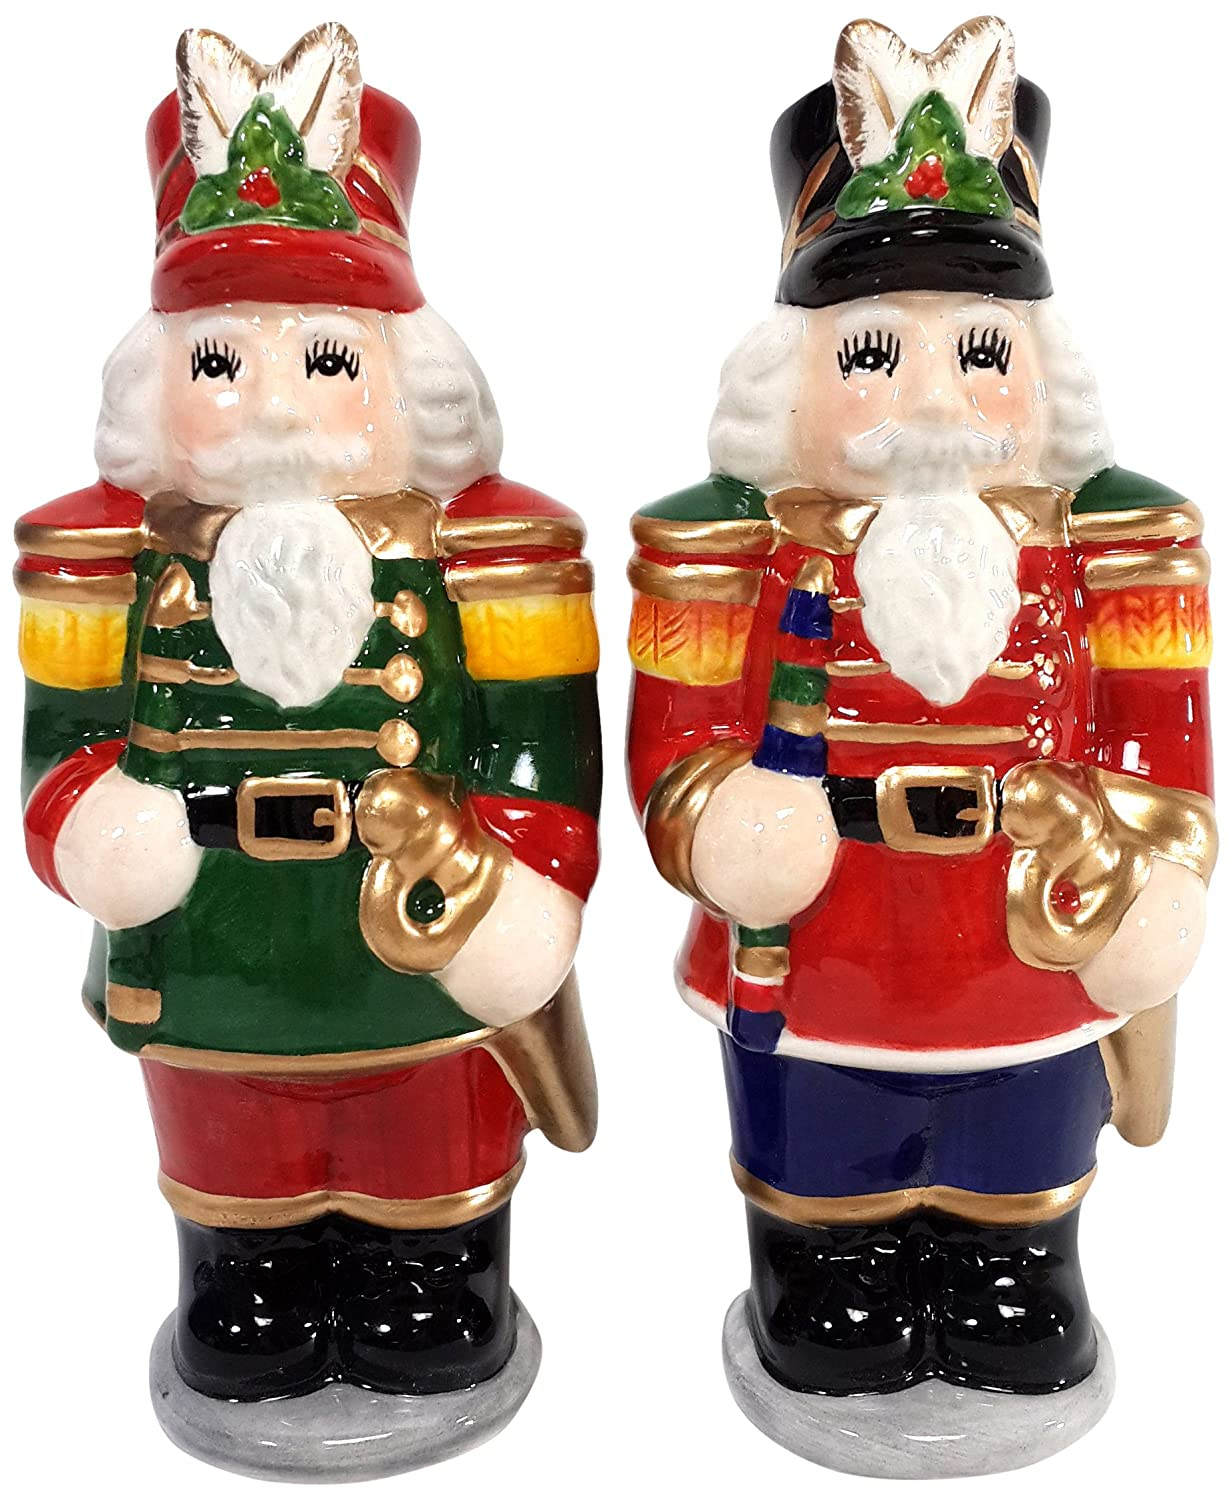 Cosmos 54546 Gifts Ceramic Nutcracker Salt and Pepper Set, 4-1/2-Inch